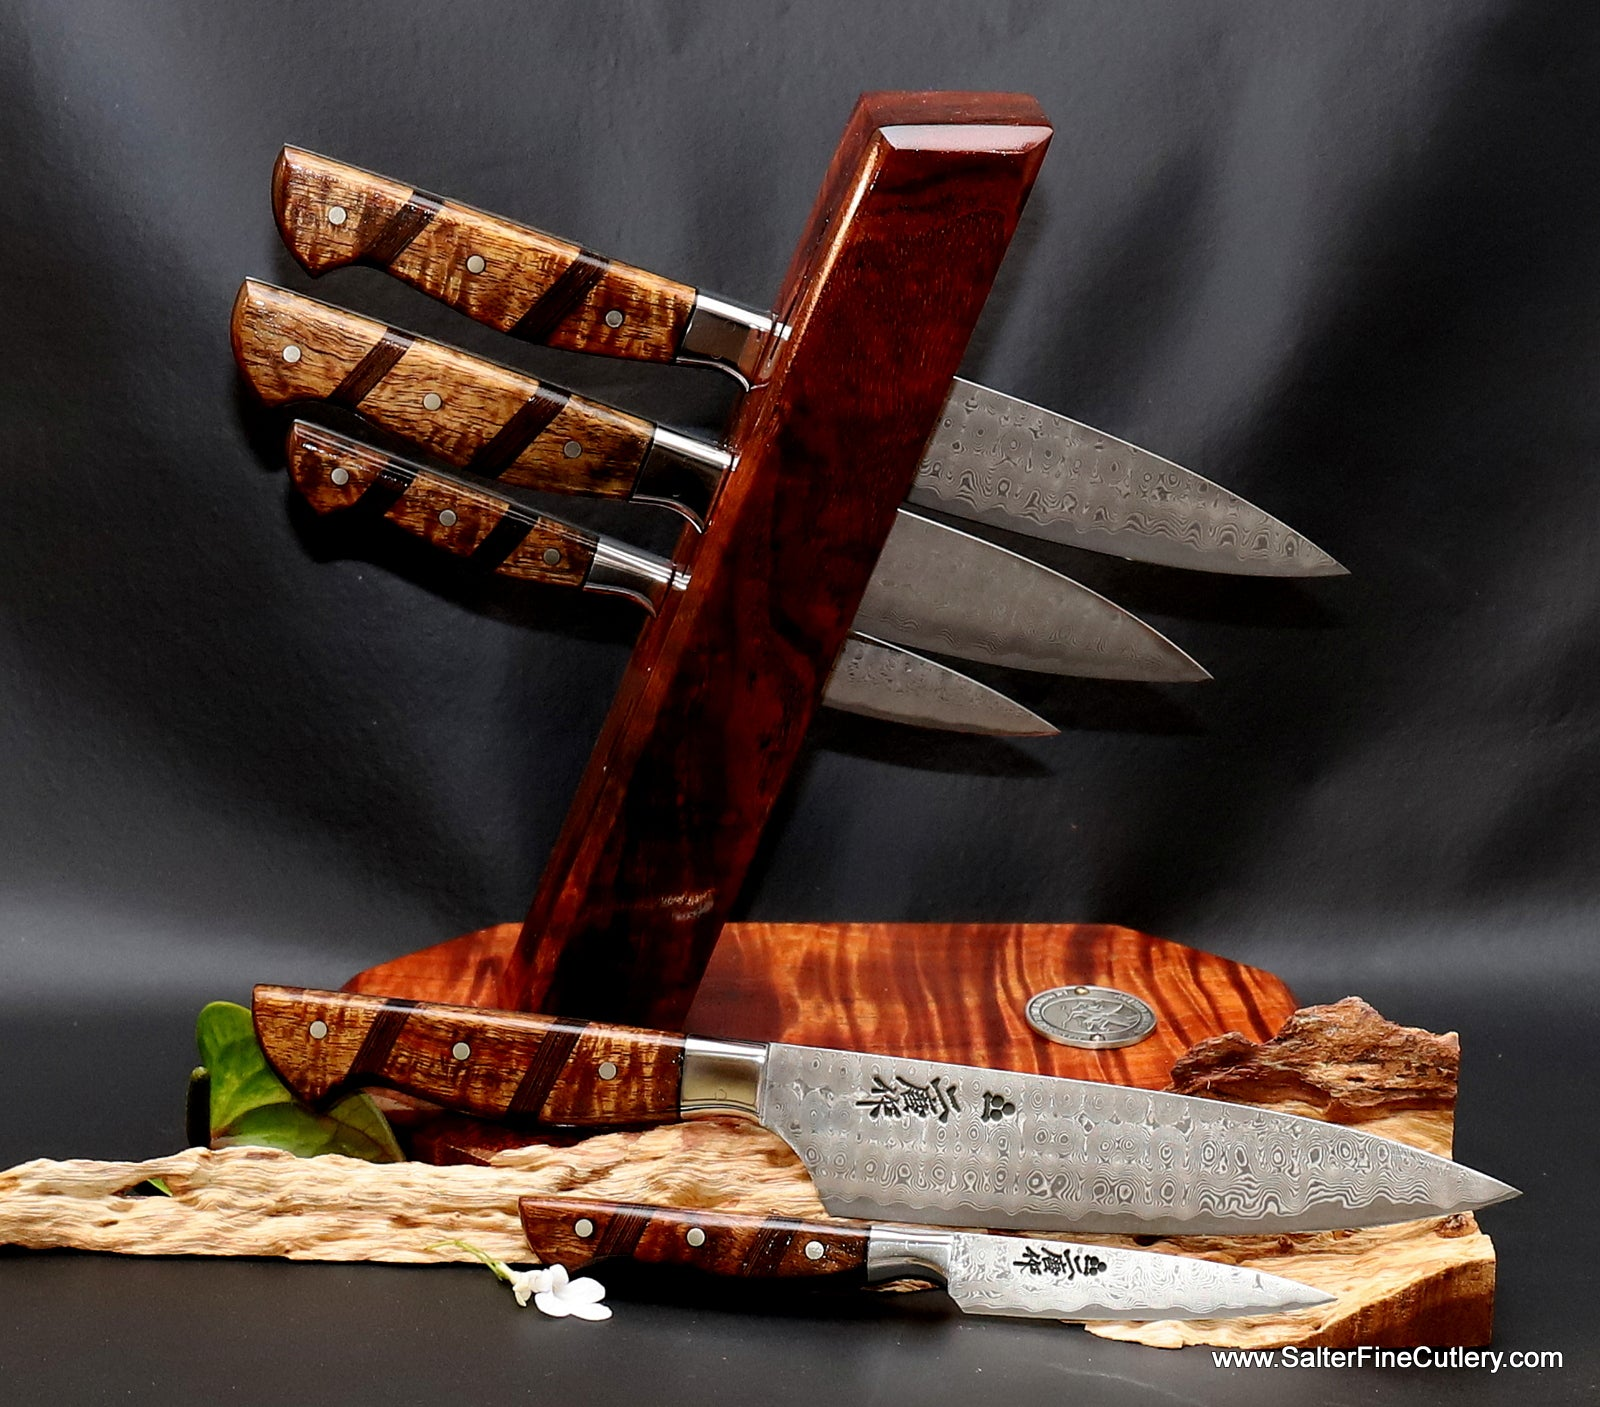 Custom handmade Charybdis design chef knives with full tang handles luxury kitchen knives from Salter Fine Cutlery